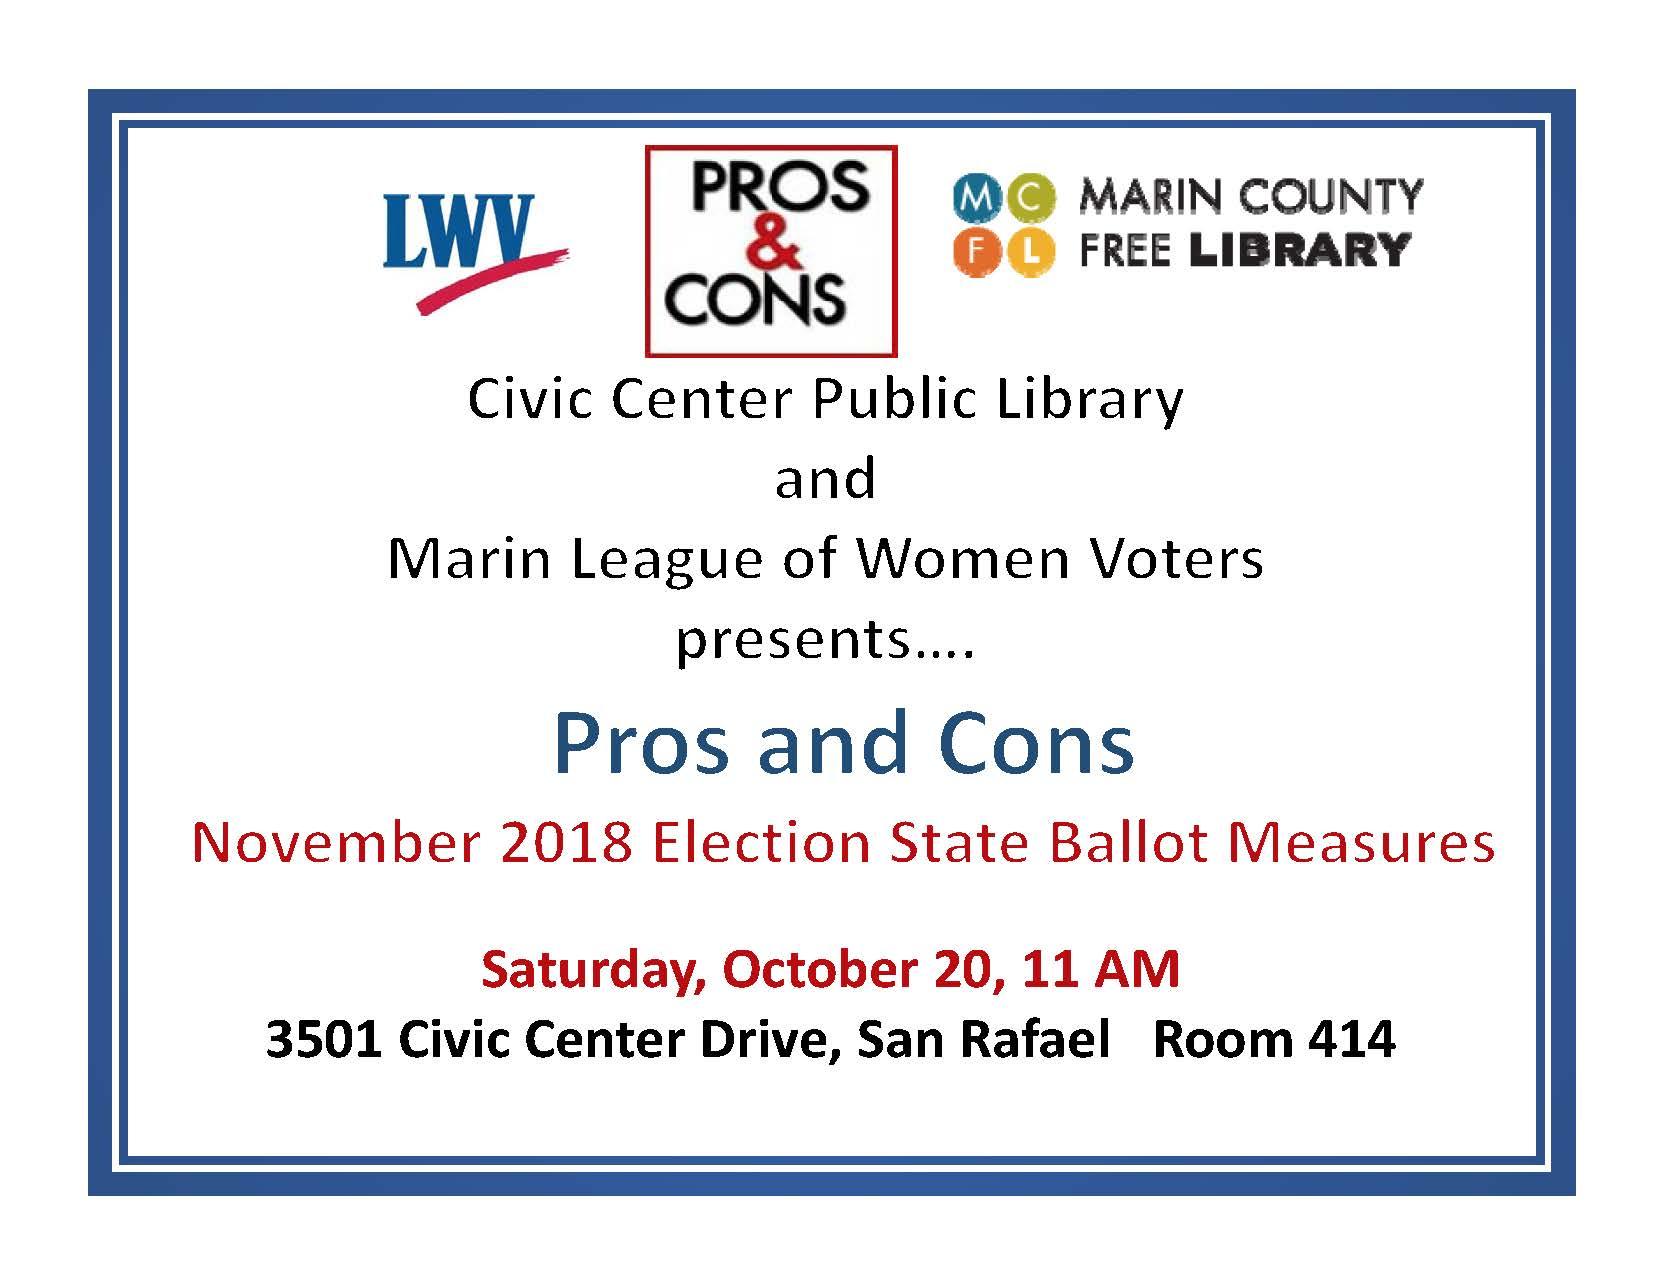 181020-Civic Center Library Pros and Cons.jpg